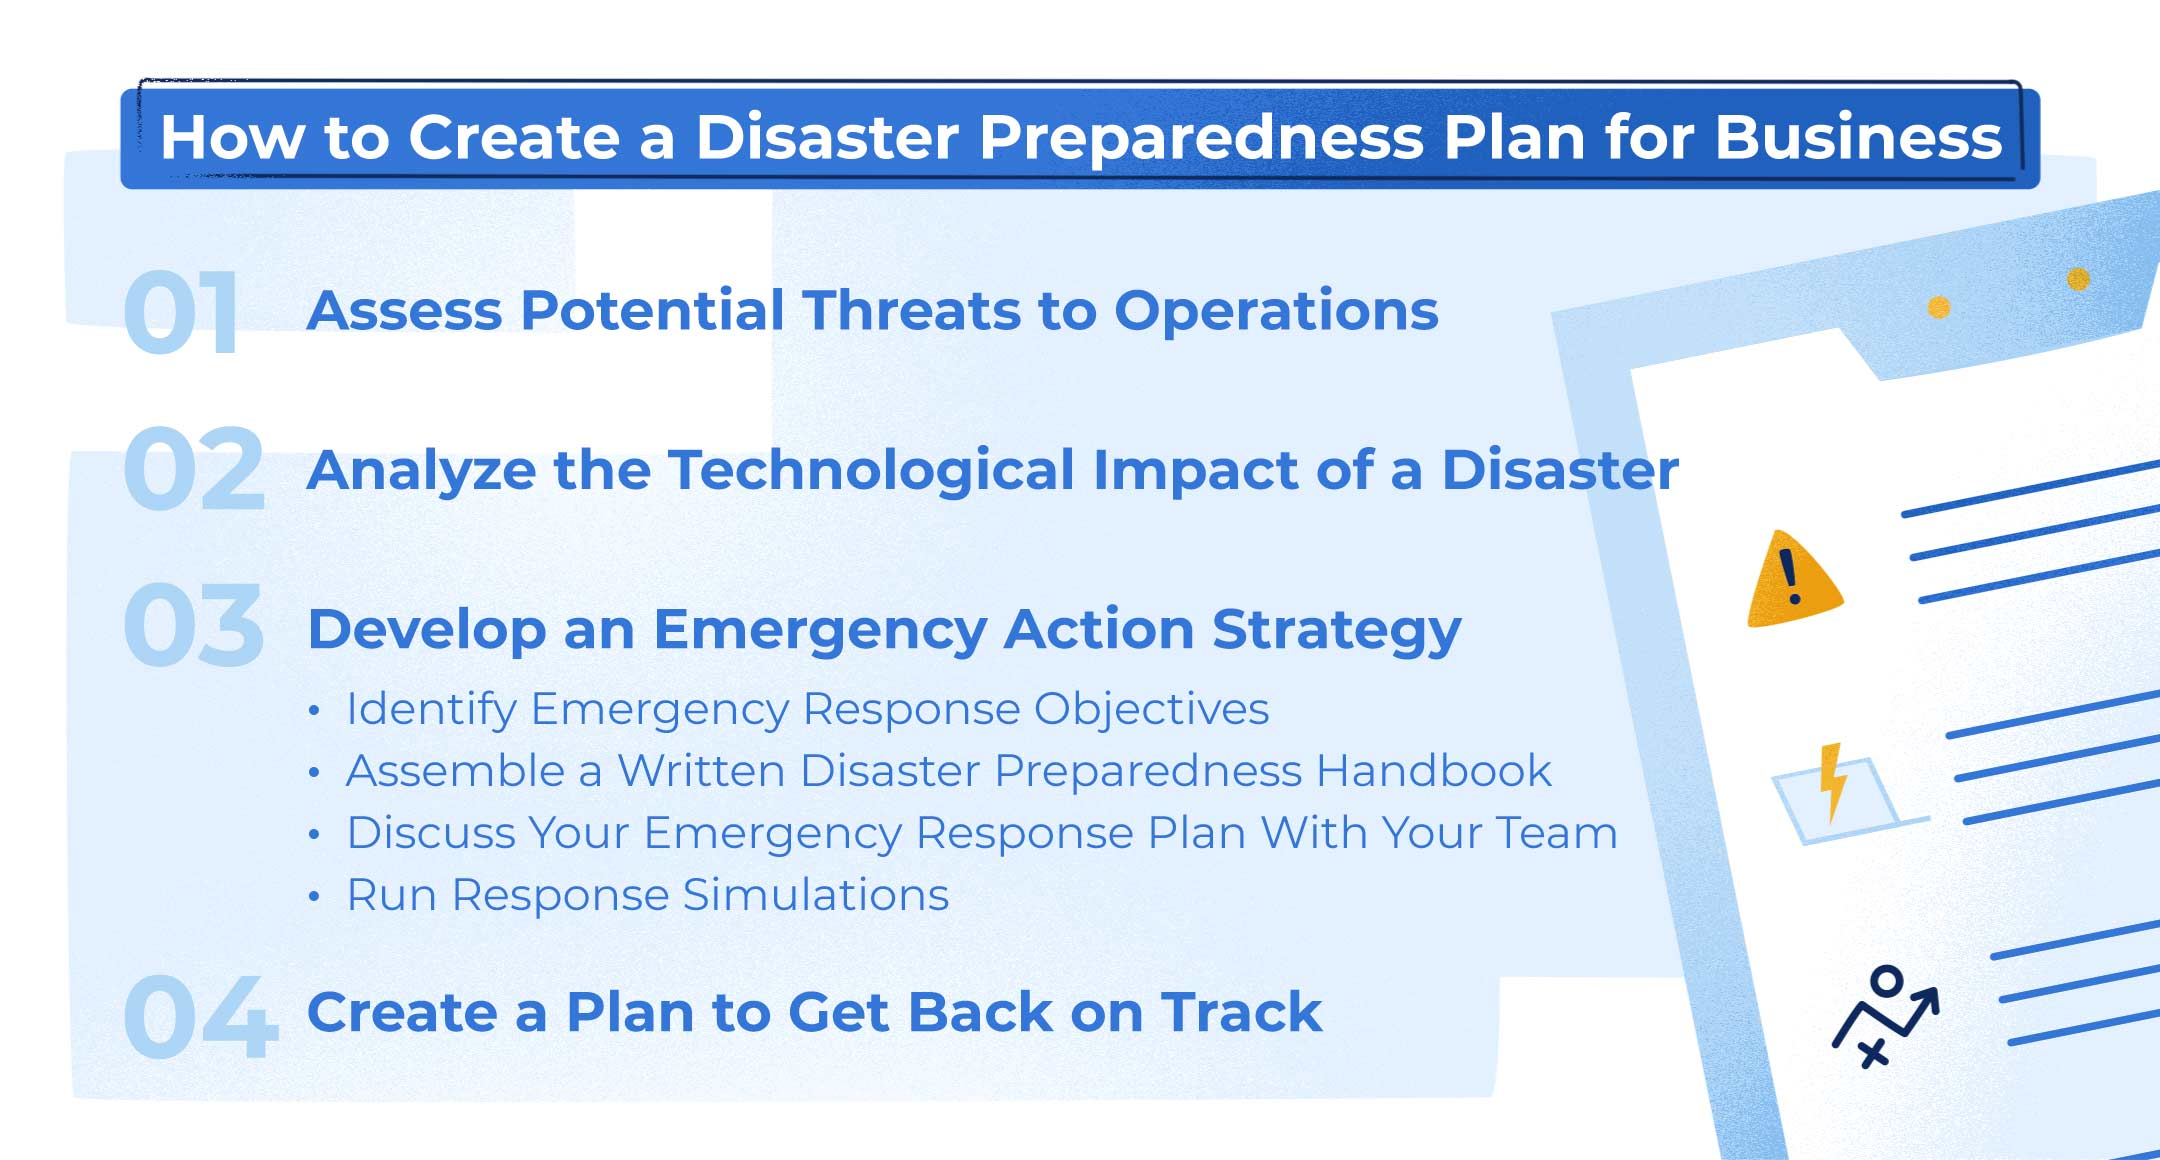 A Disaster Preparedness Plan for Business Checklist